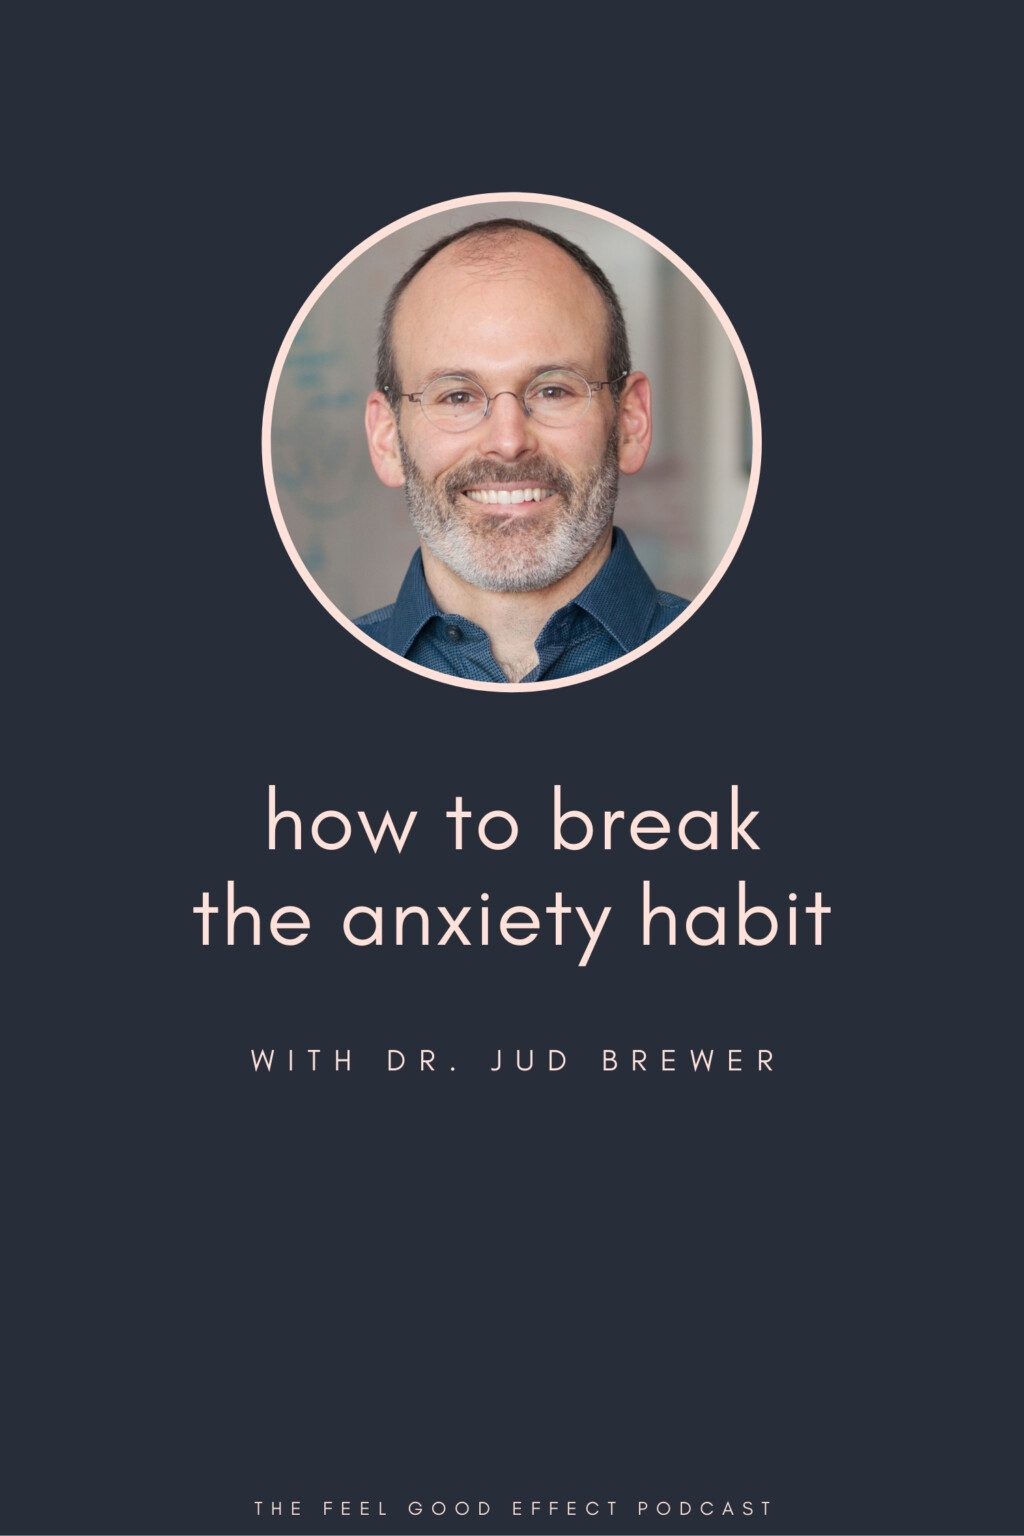 headshot of dr jud brewer on navy background with pink text that reads how to break the anxiety habit